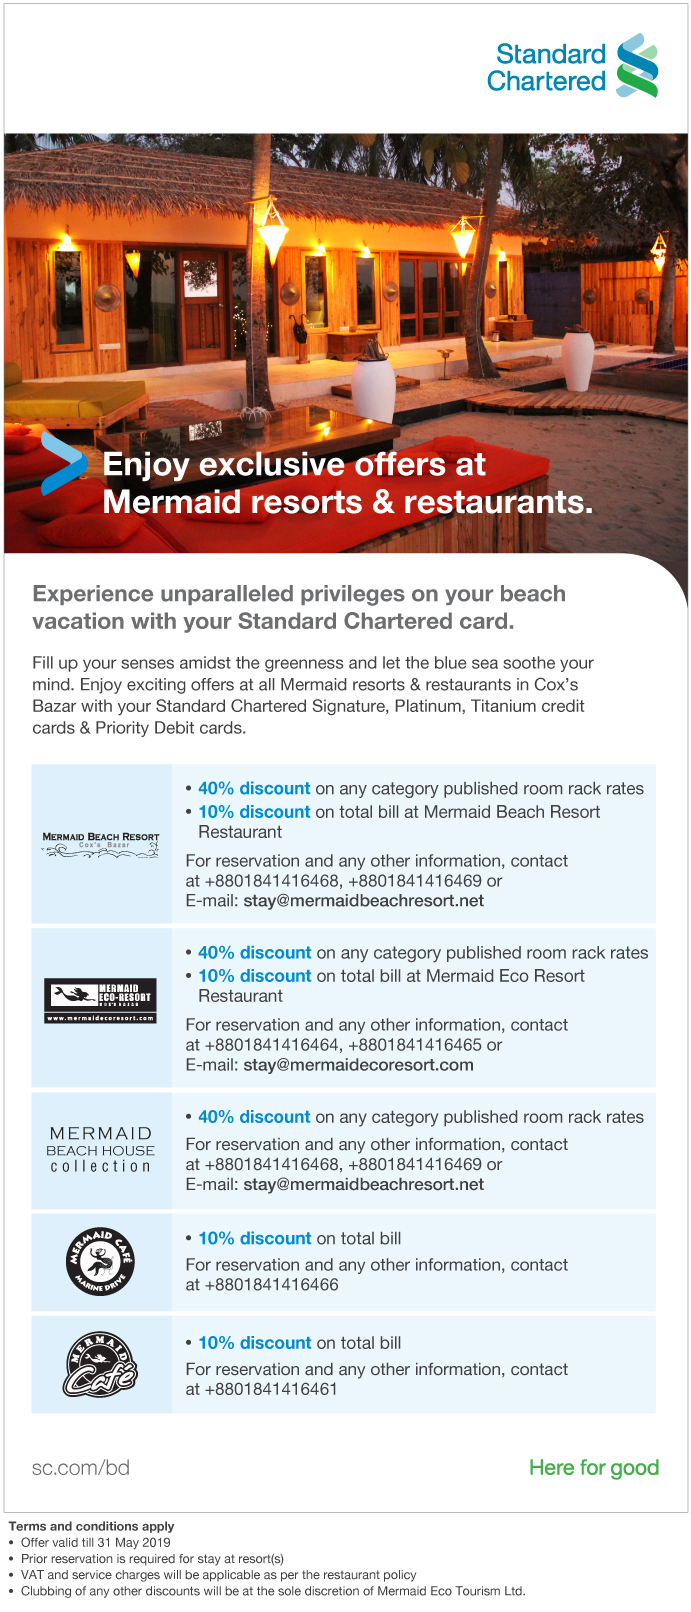 eDM_Mermaid-Resorts-&-Restaurants-offer